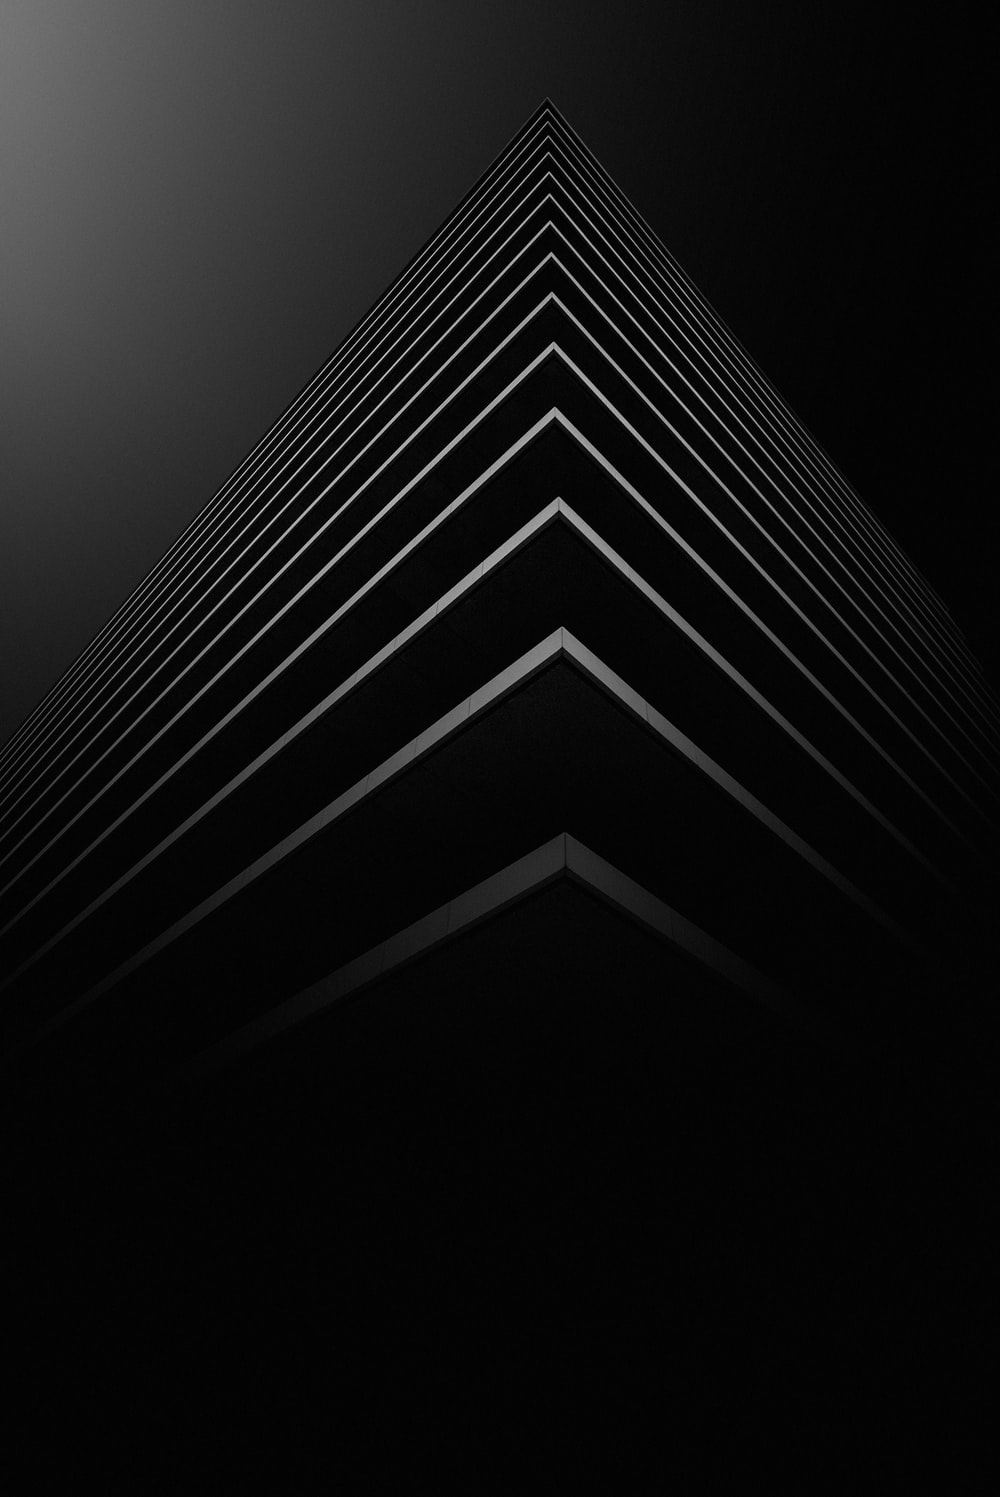 Black And White Abstract Pictures Download Free Images On Unsplash